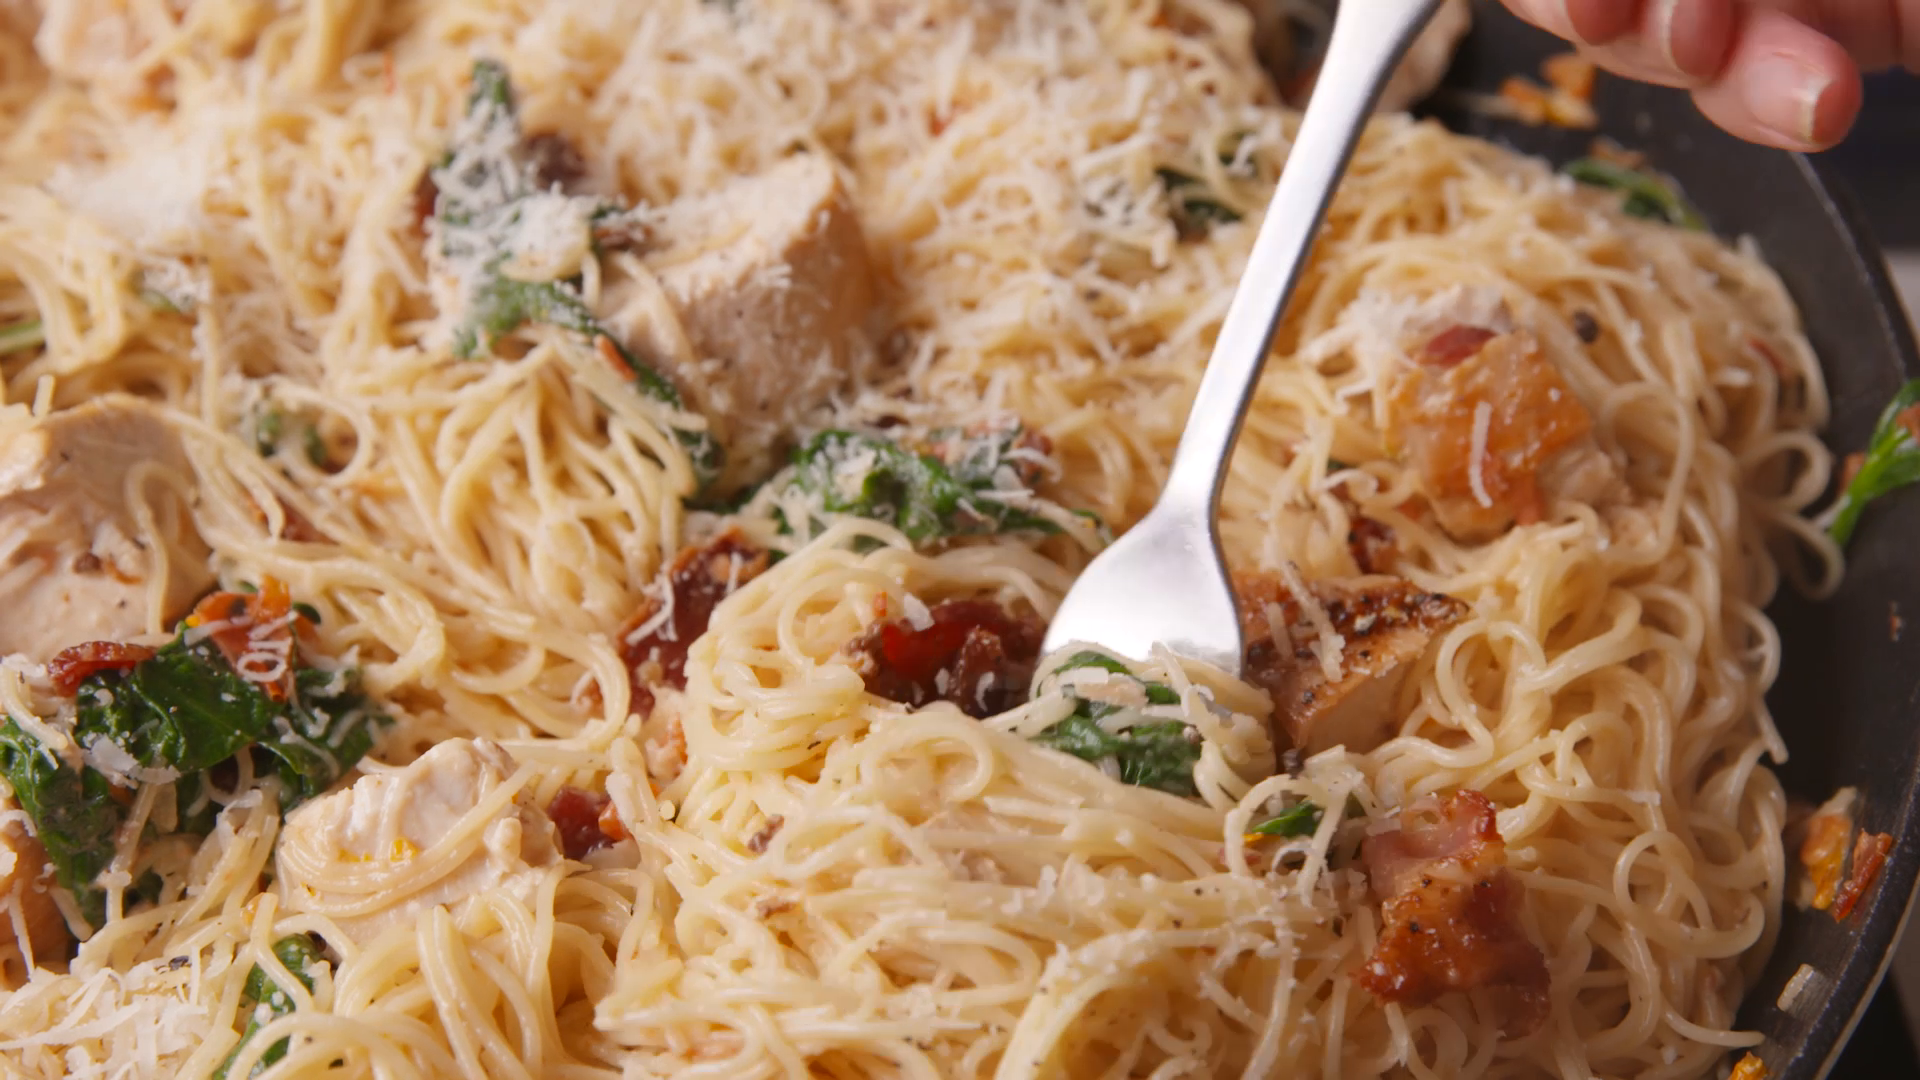 How to Make Chicken, Bacon, and Spinach Spaghetti